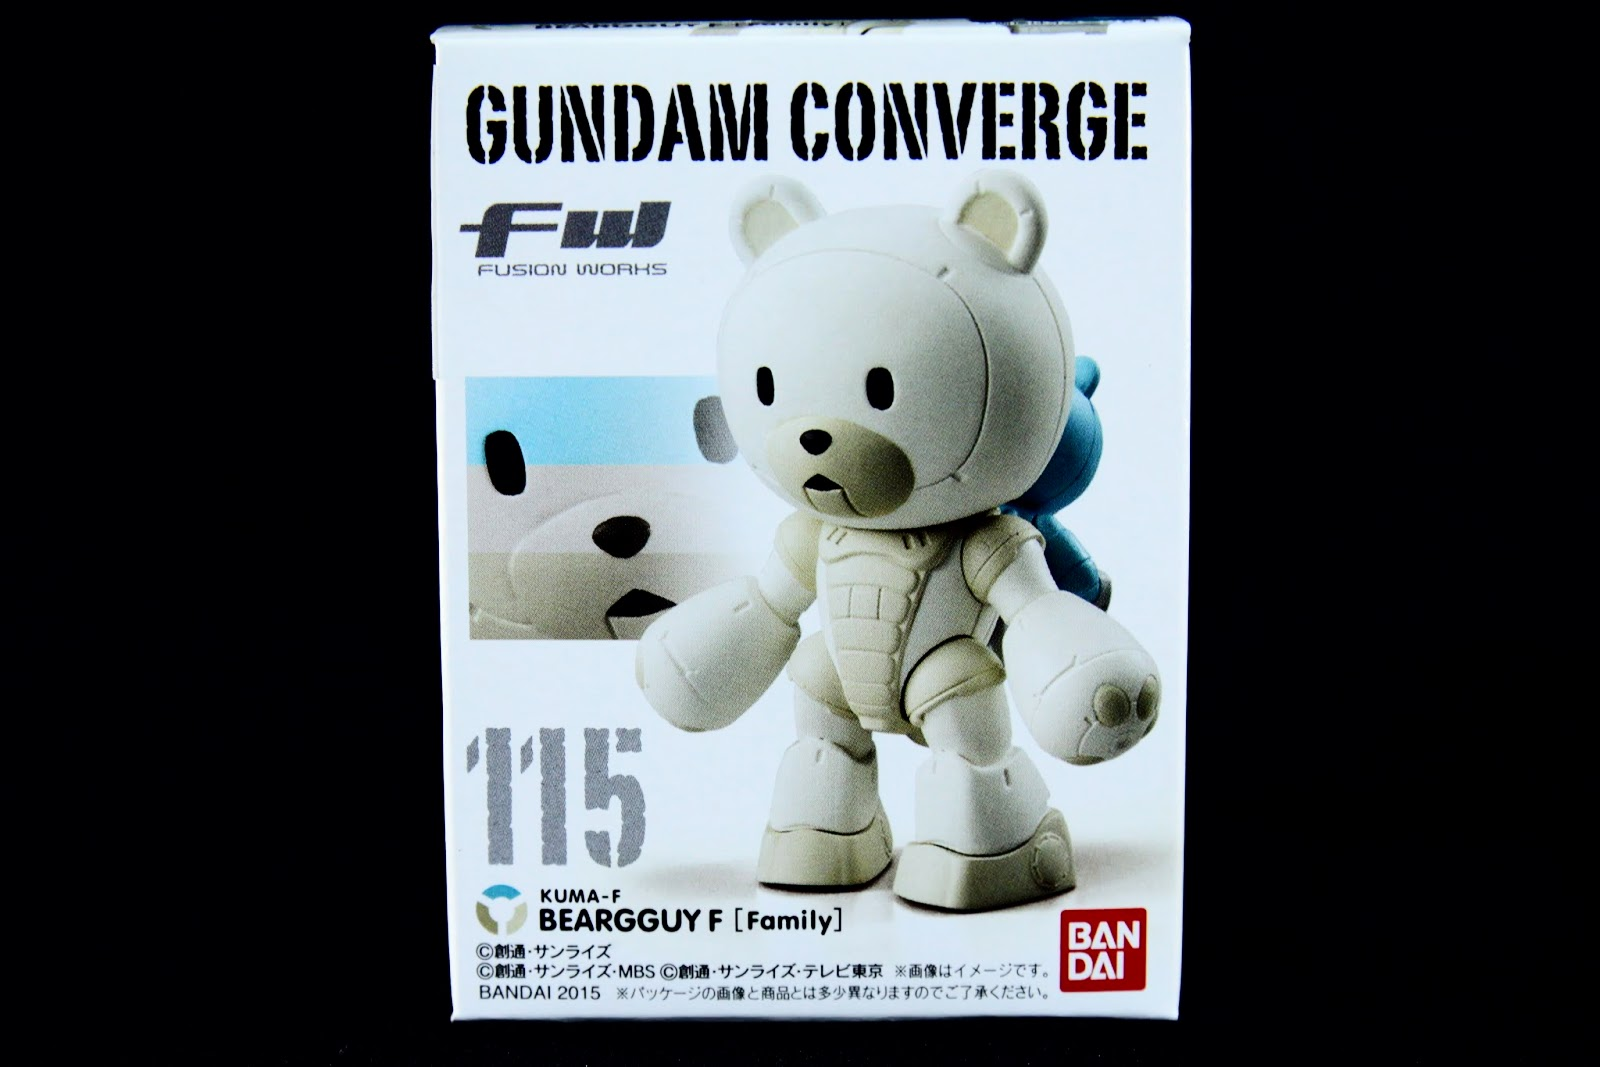 No.115 KUMA-F BearGguy F